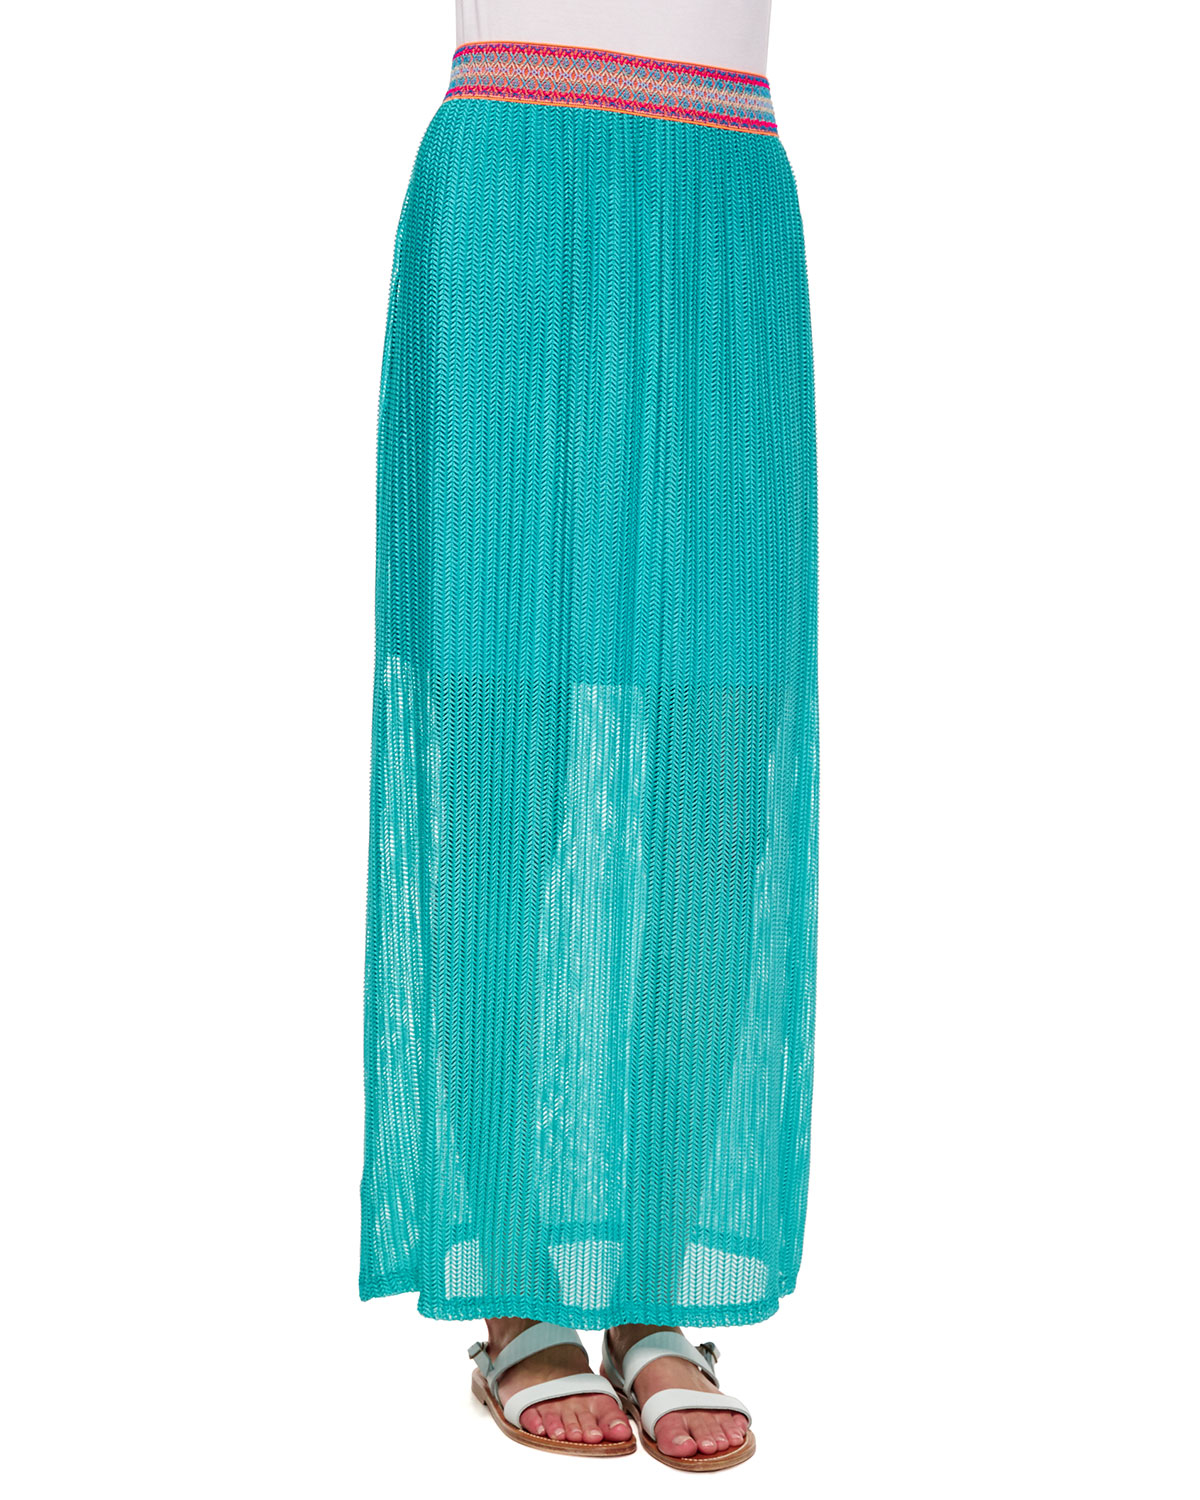 neiman chevron pattern maxi skirt in green jade